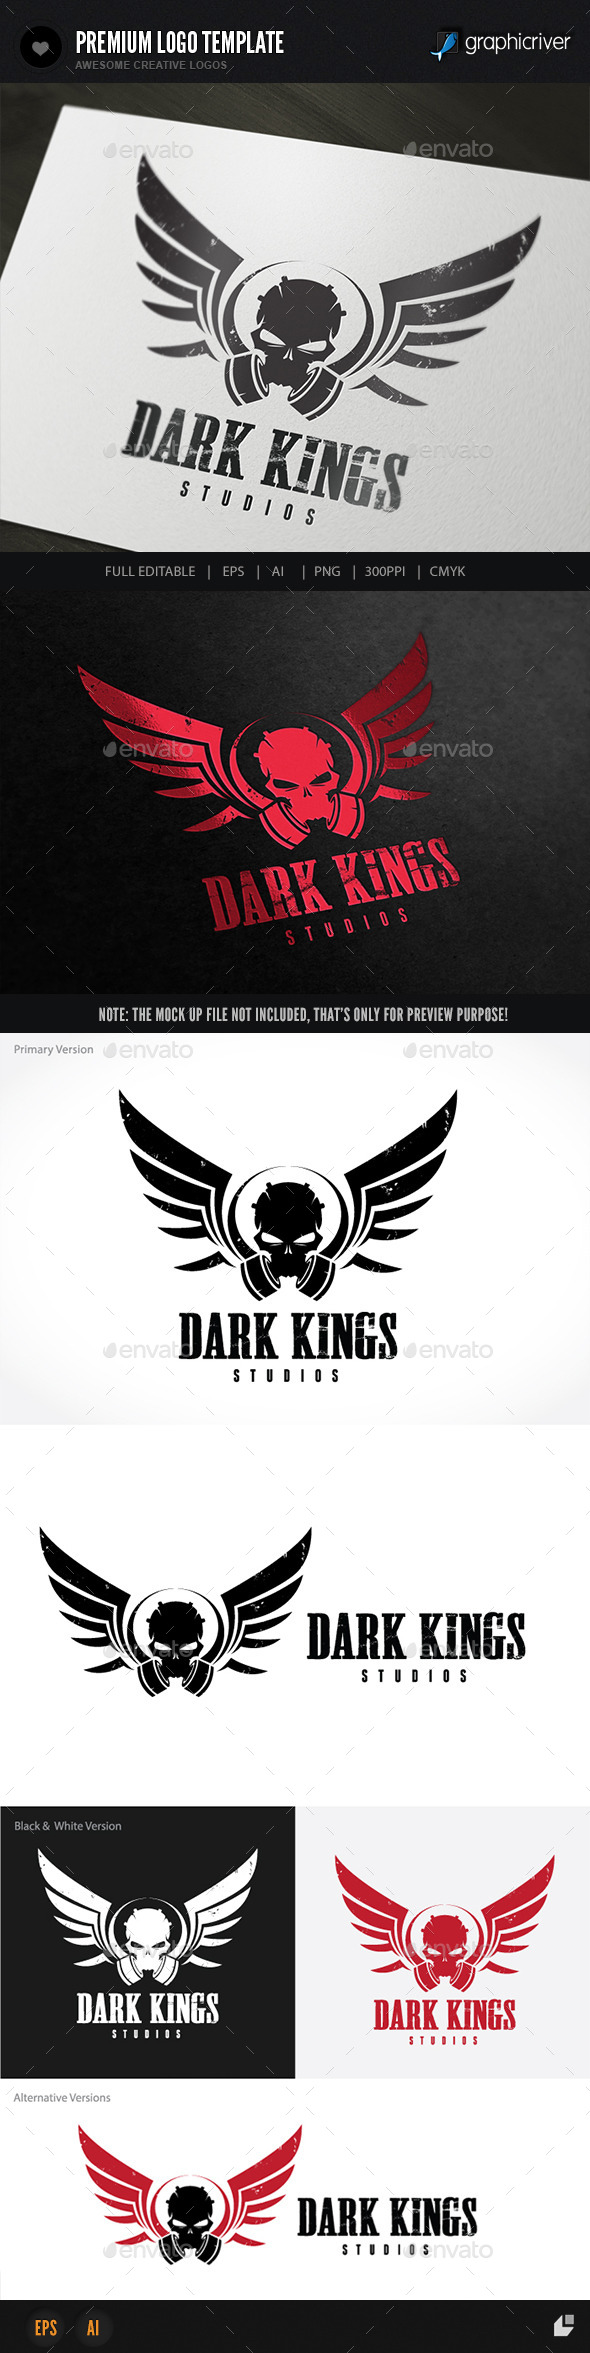 GraphicRiver Dark Kings 8948738